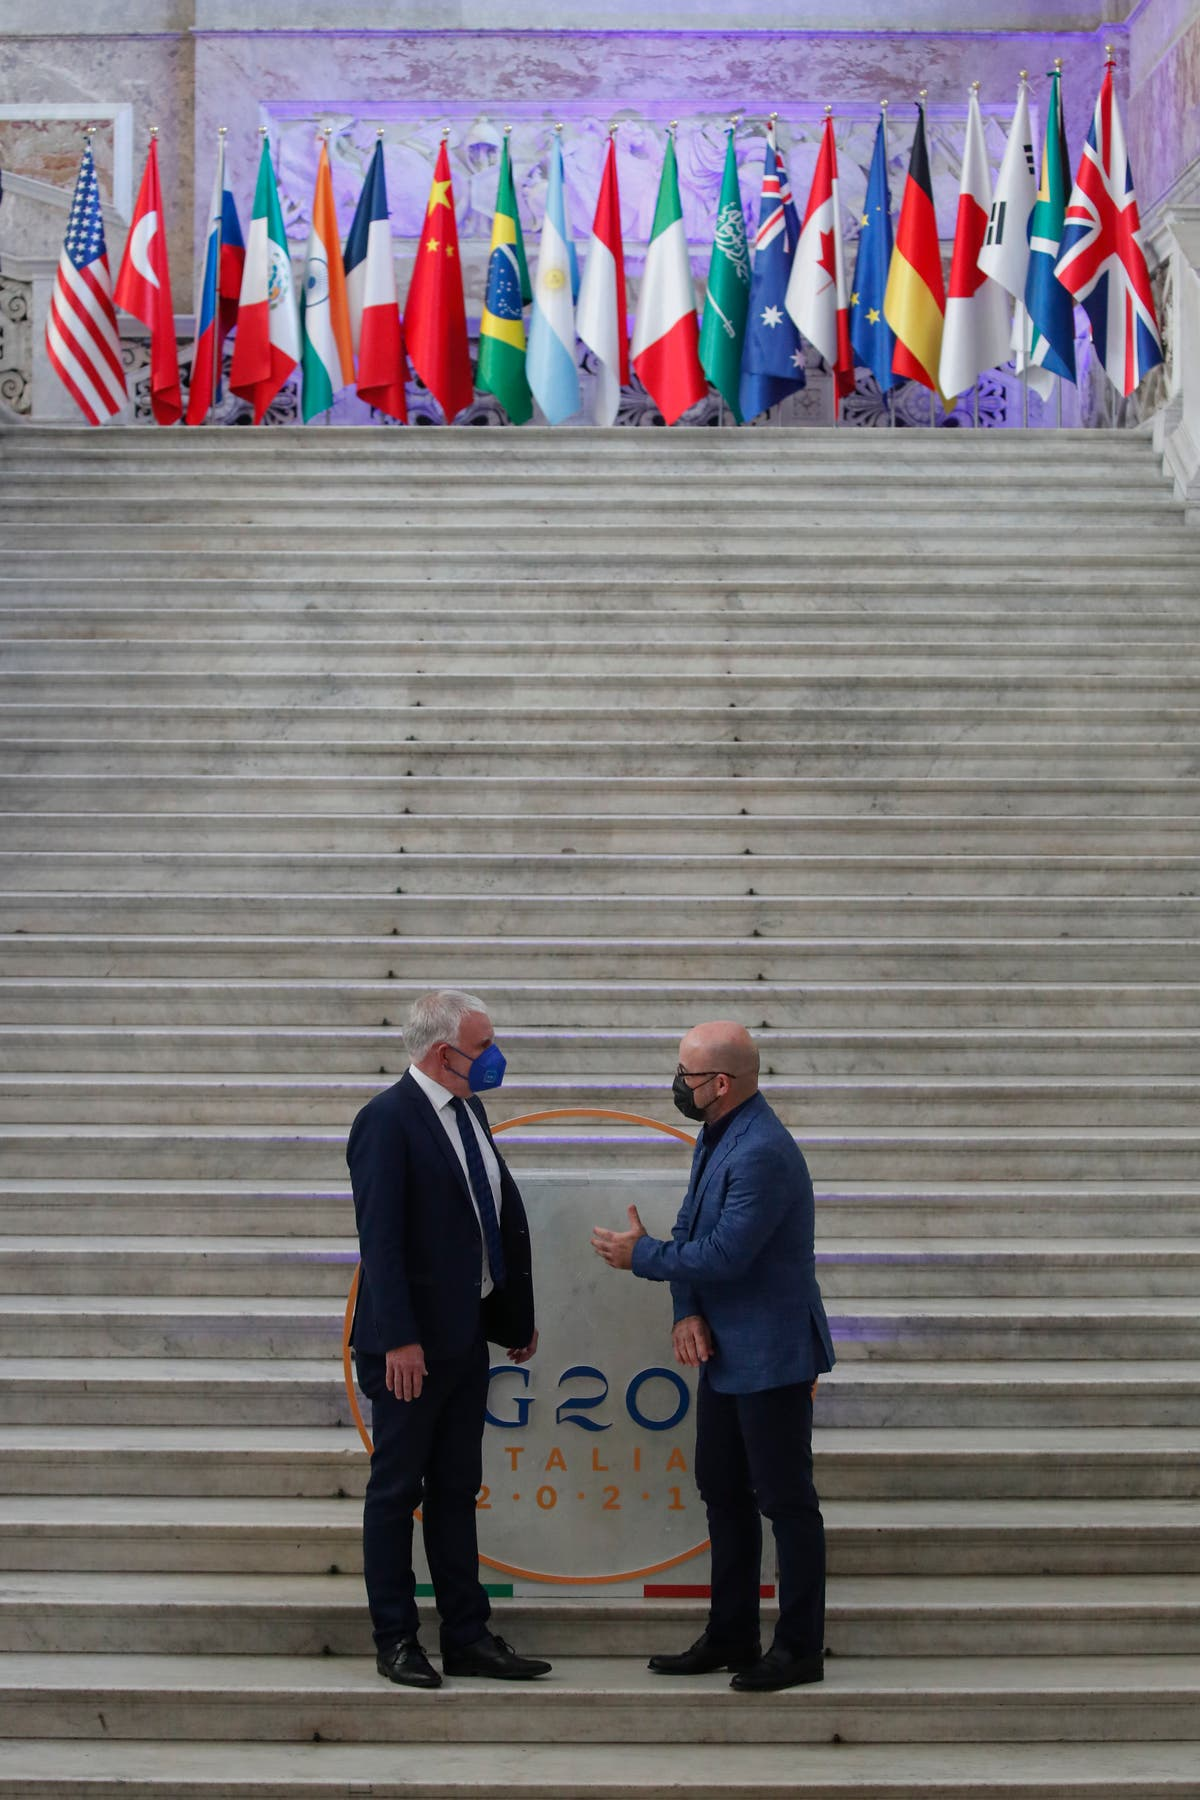 G20 environment ministers meet in Italy amid floods, fires